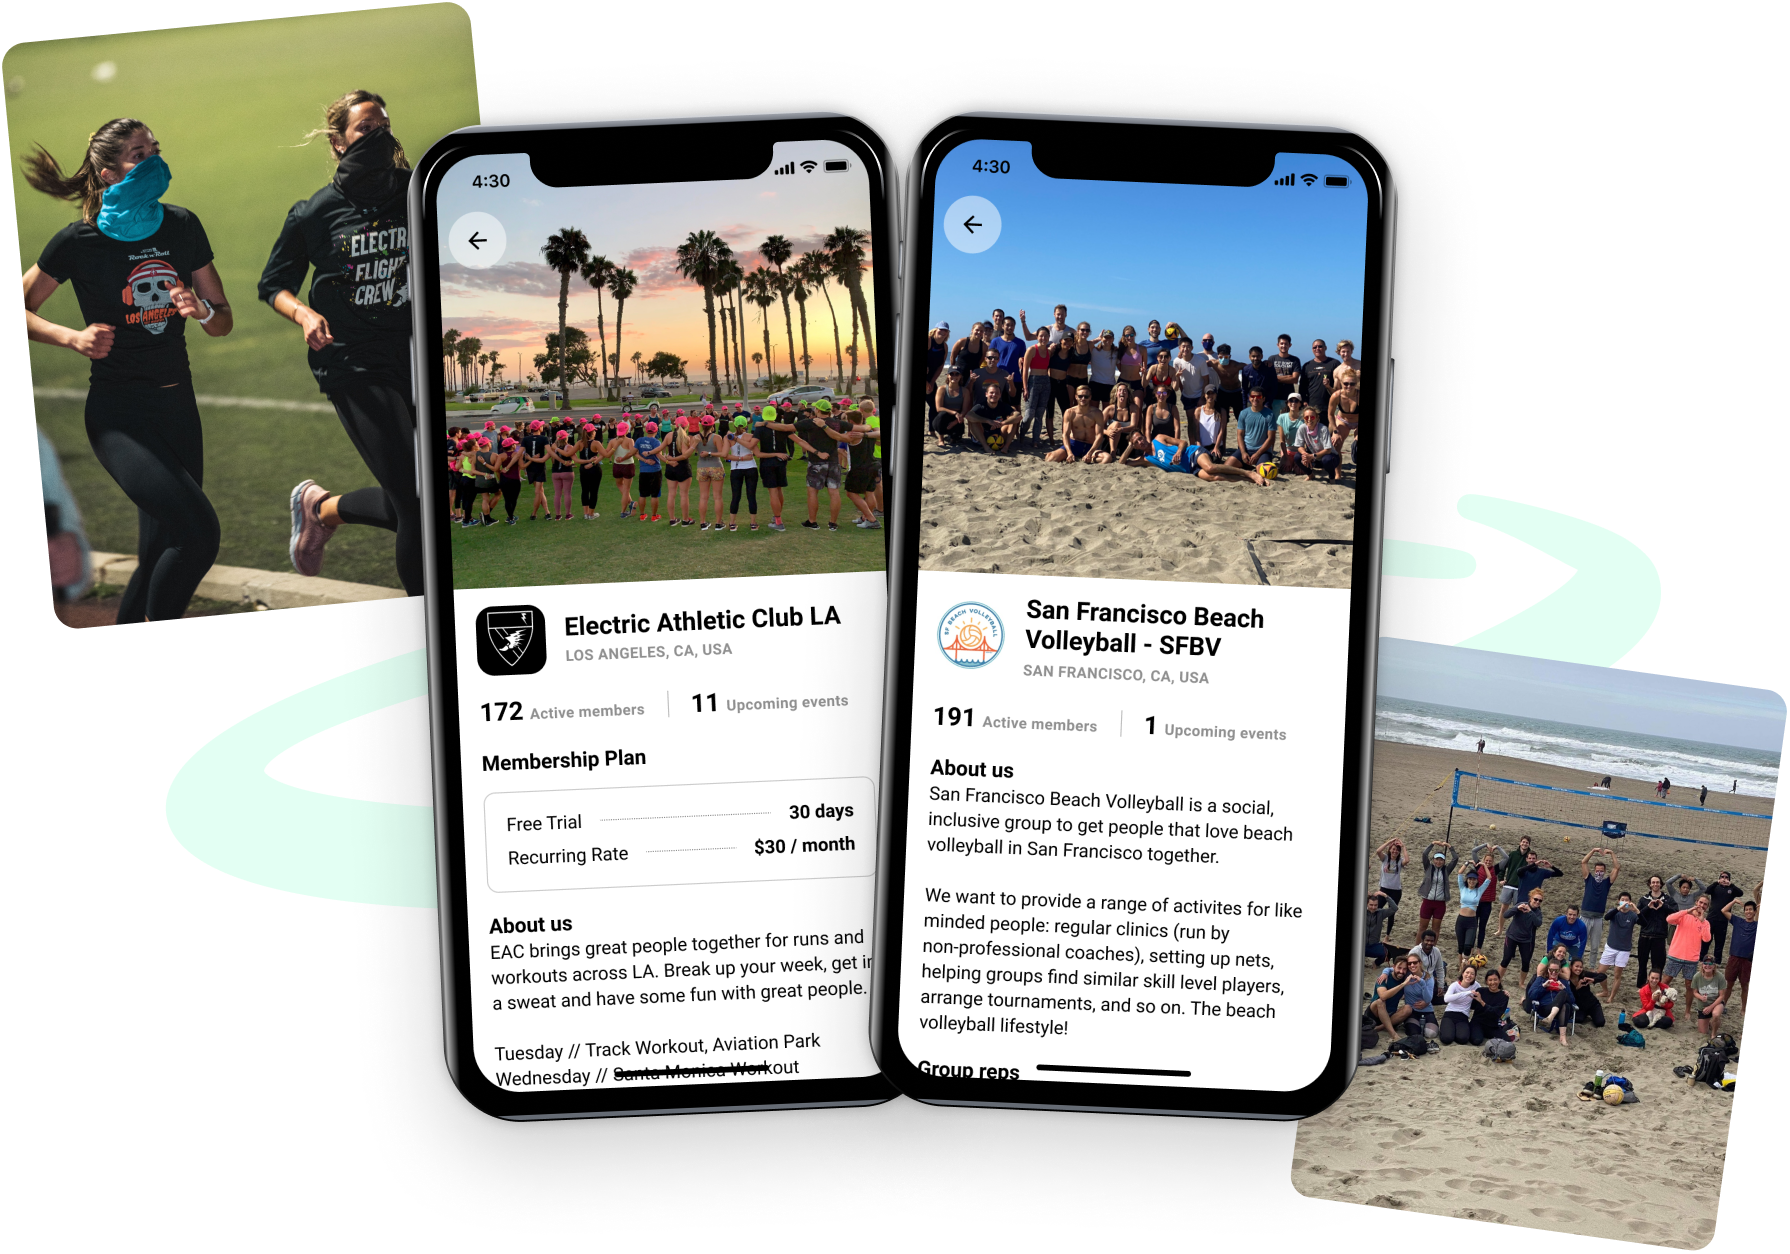 Wireframes of two groups on Heylo - Electric Athletic Club LA and San Francisco Beach Volleyball.